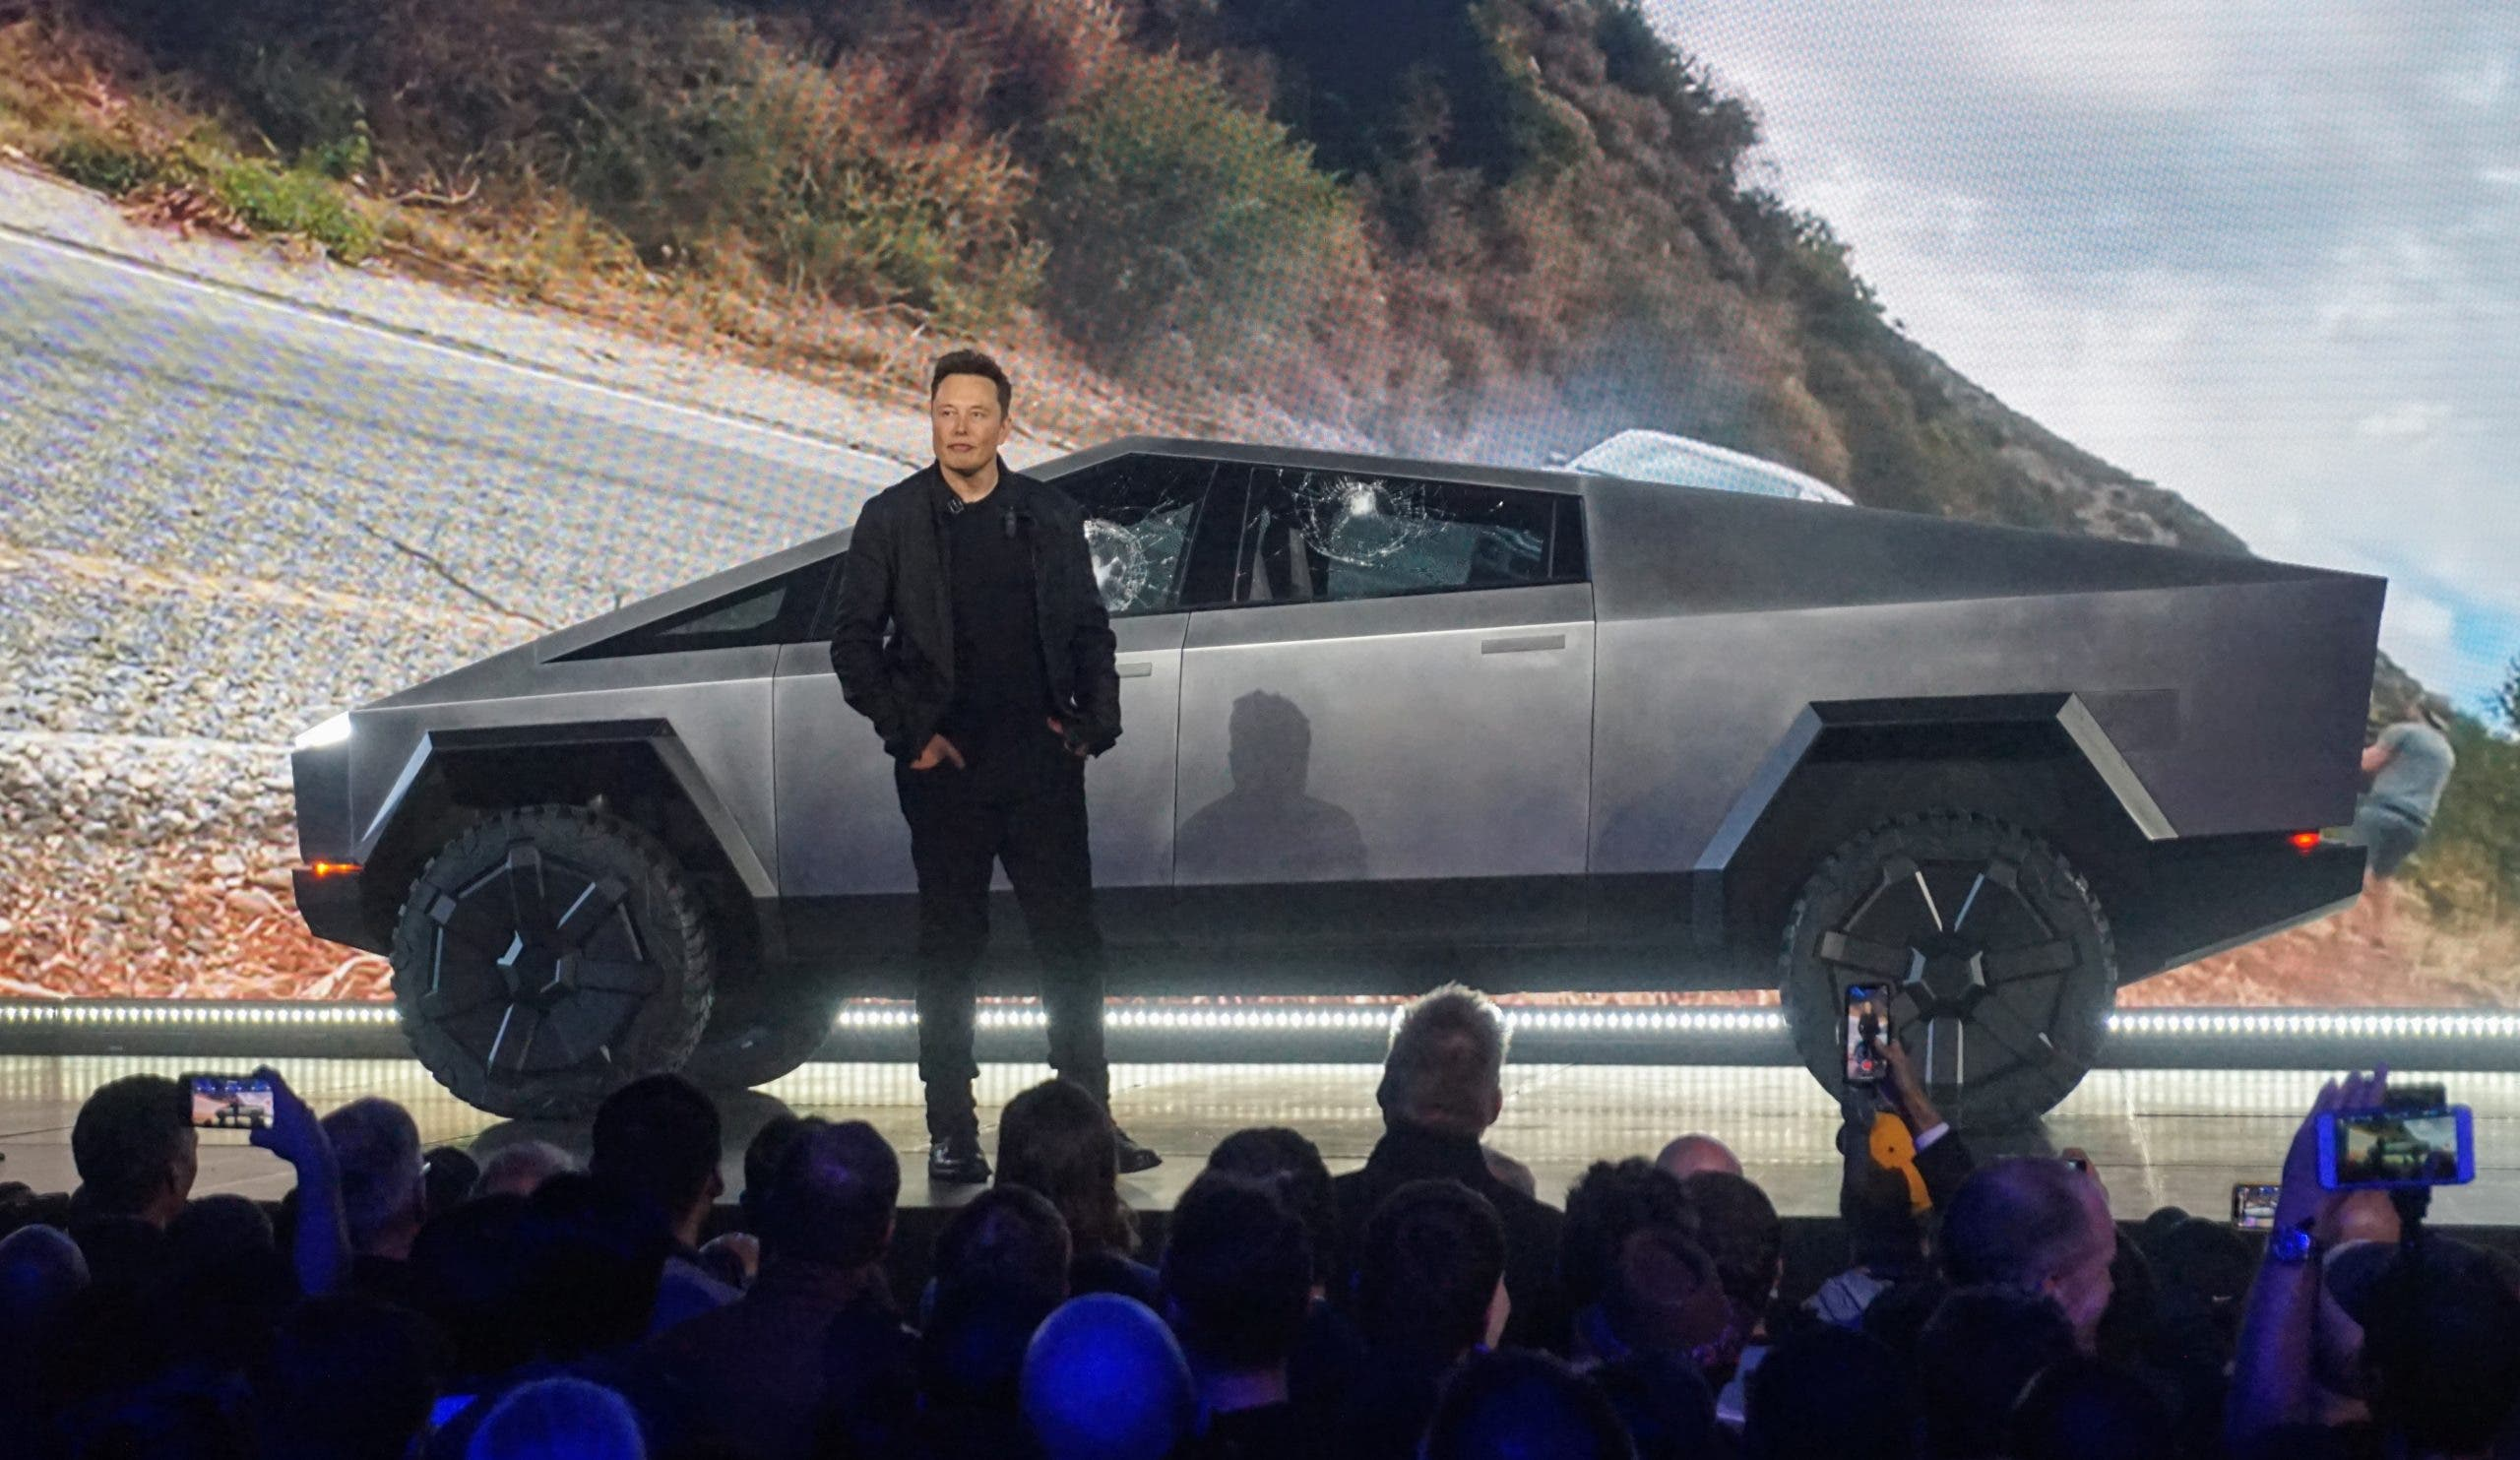 Elon Musk Uses Economies of Scale & Vertical Integration to Revolutionize Auto Industry